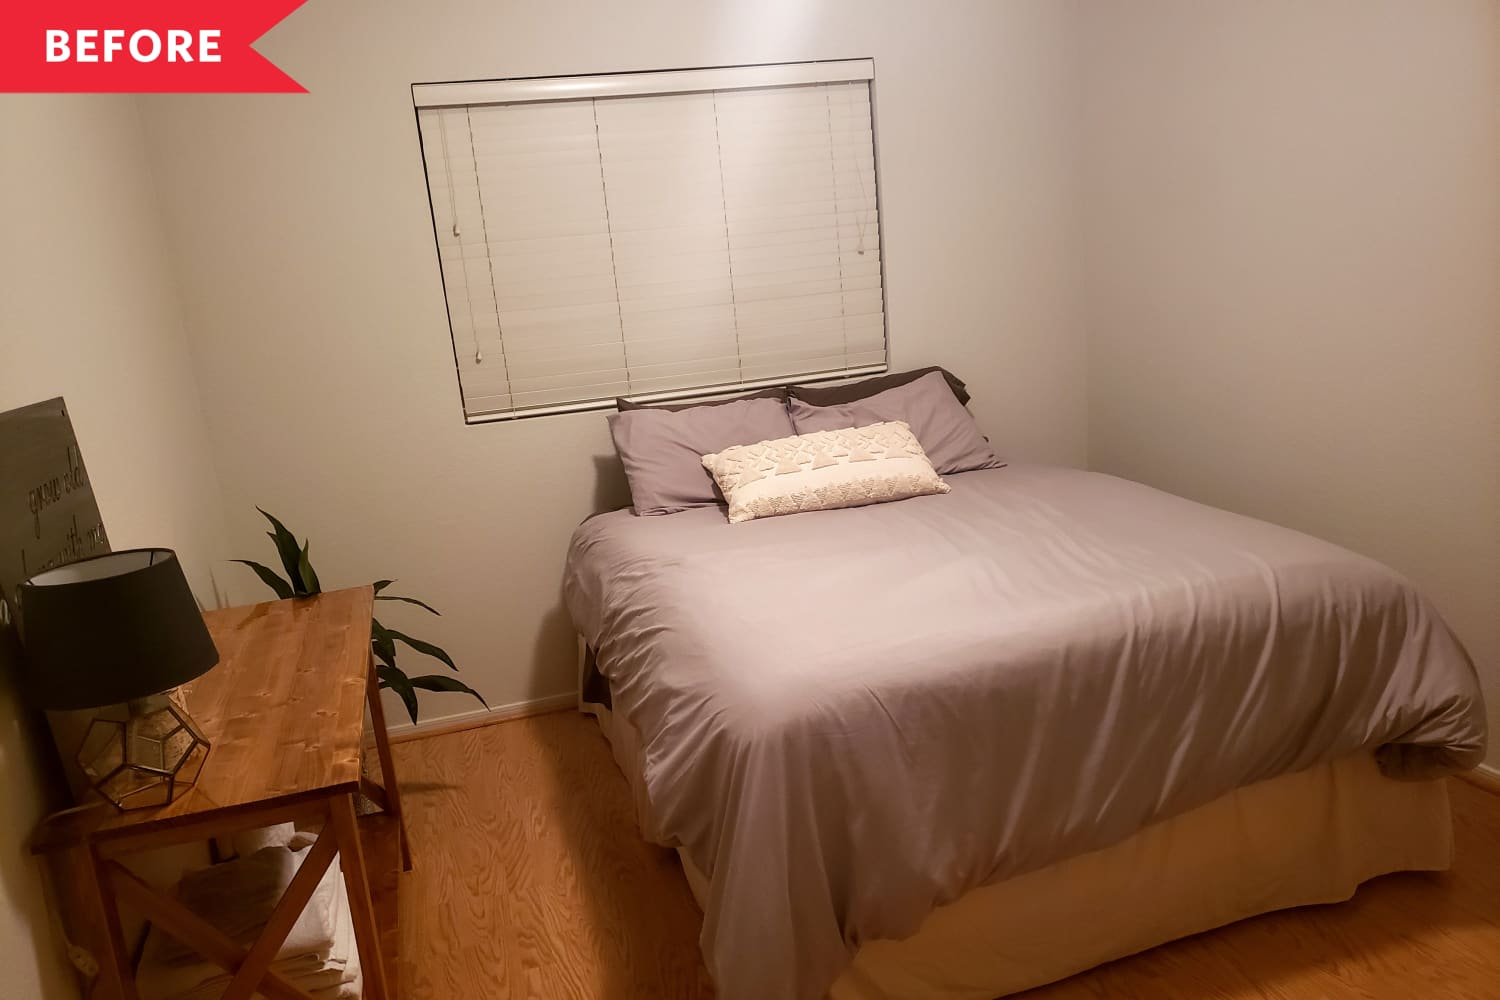 Before and After: A Charming Vintage-Style Redo for this Bare Bedroom — for Just $774